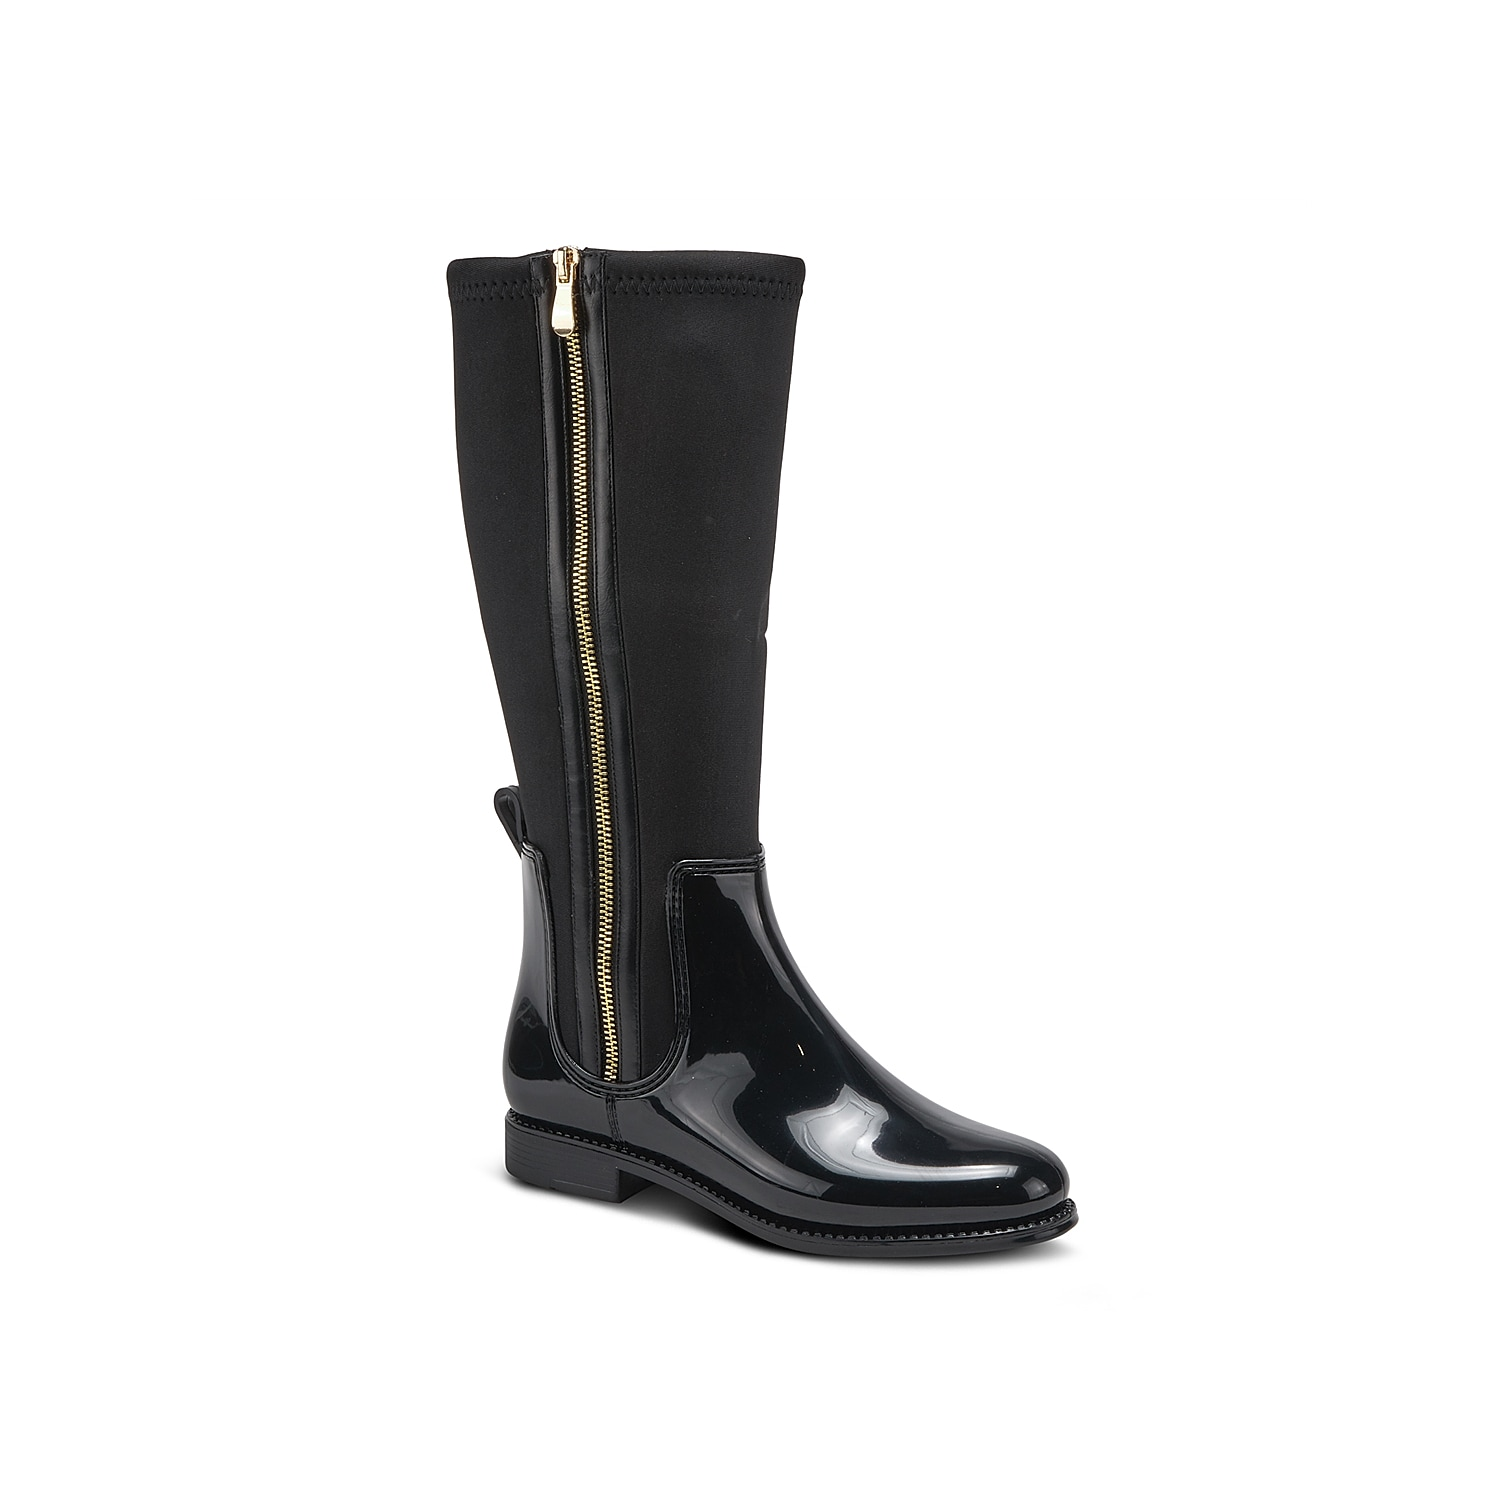 Stay fashionable and dry in inclement weather in the Puddeli rain boot by Spring step. This tall boot is styled with full zipper closure for a snug fit and pull tab at the back for convenient wearing.Click here for Boot Measuring Guide.